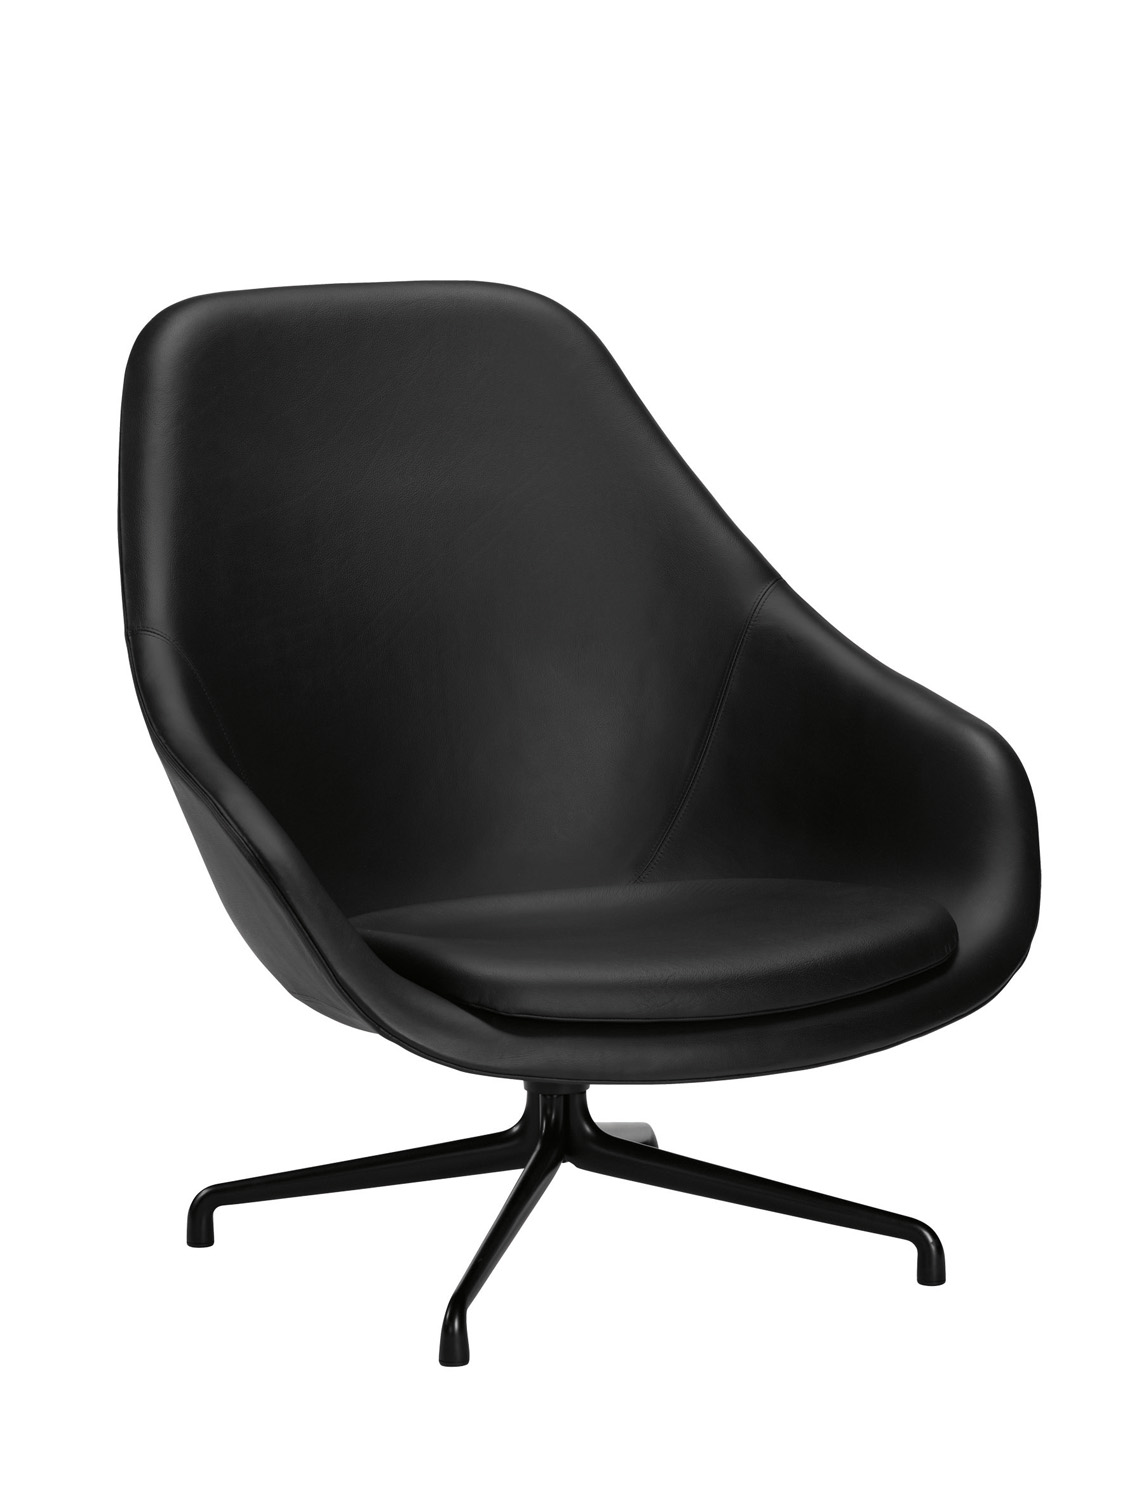 About a Lounge by Hay, $4369, cultdesign.com.au